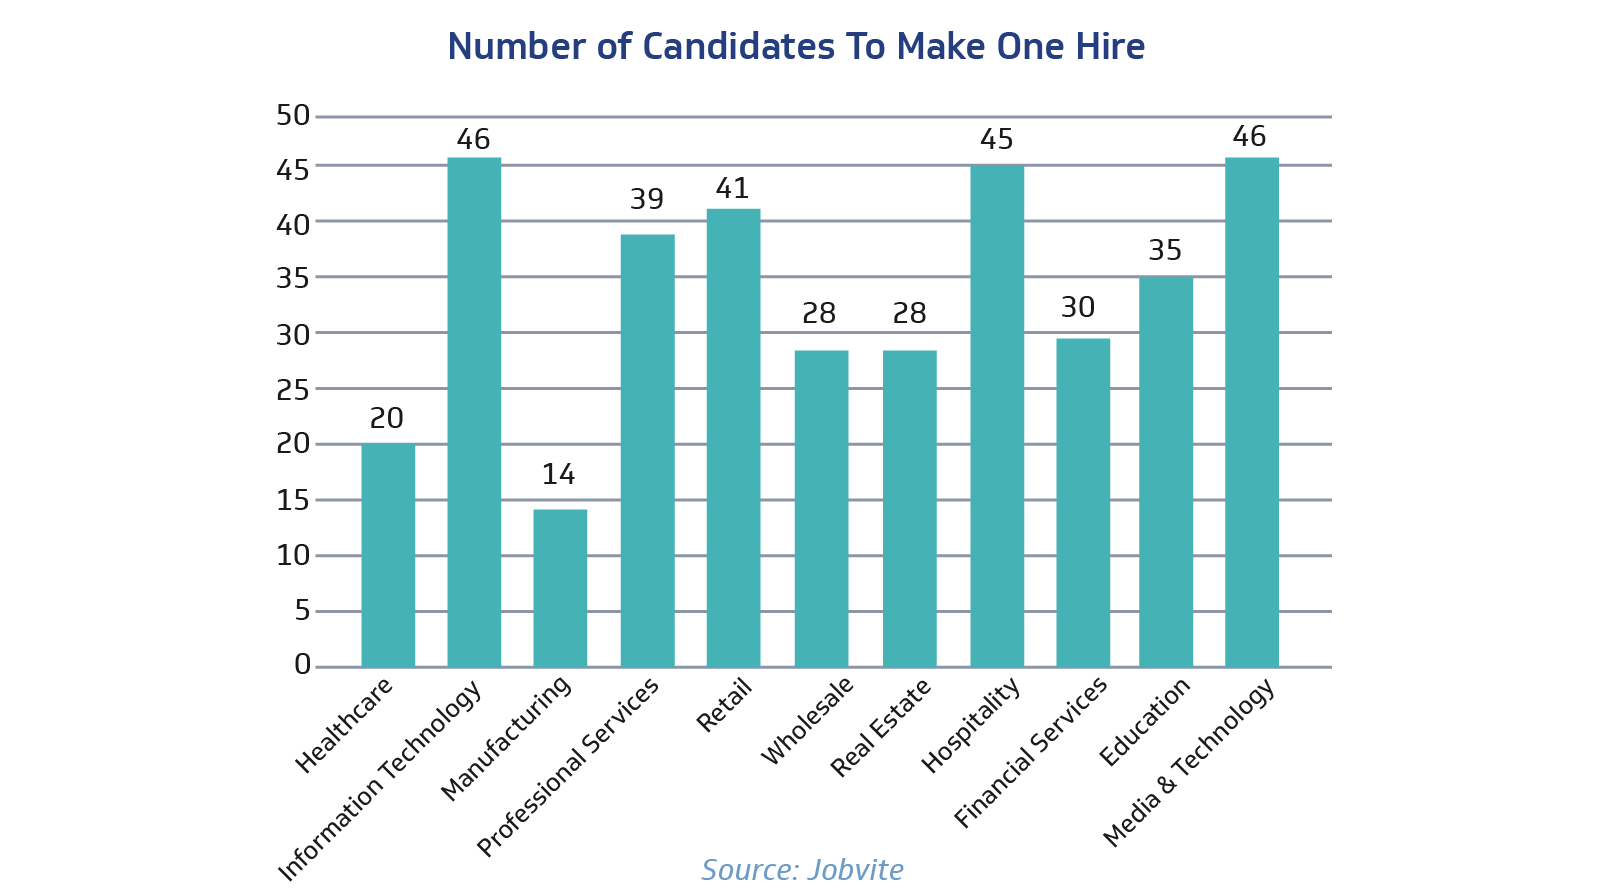 Number of Candidates to Make One Hire